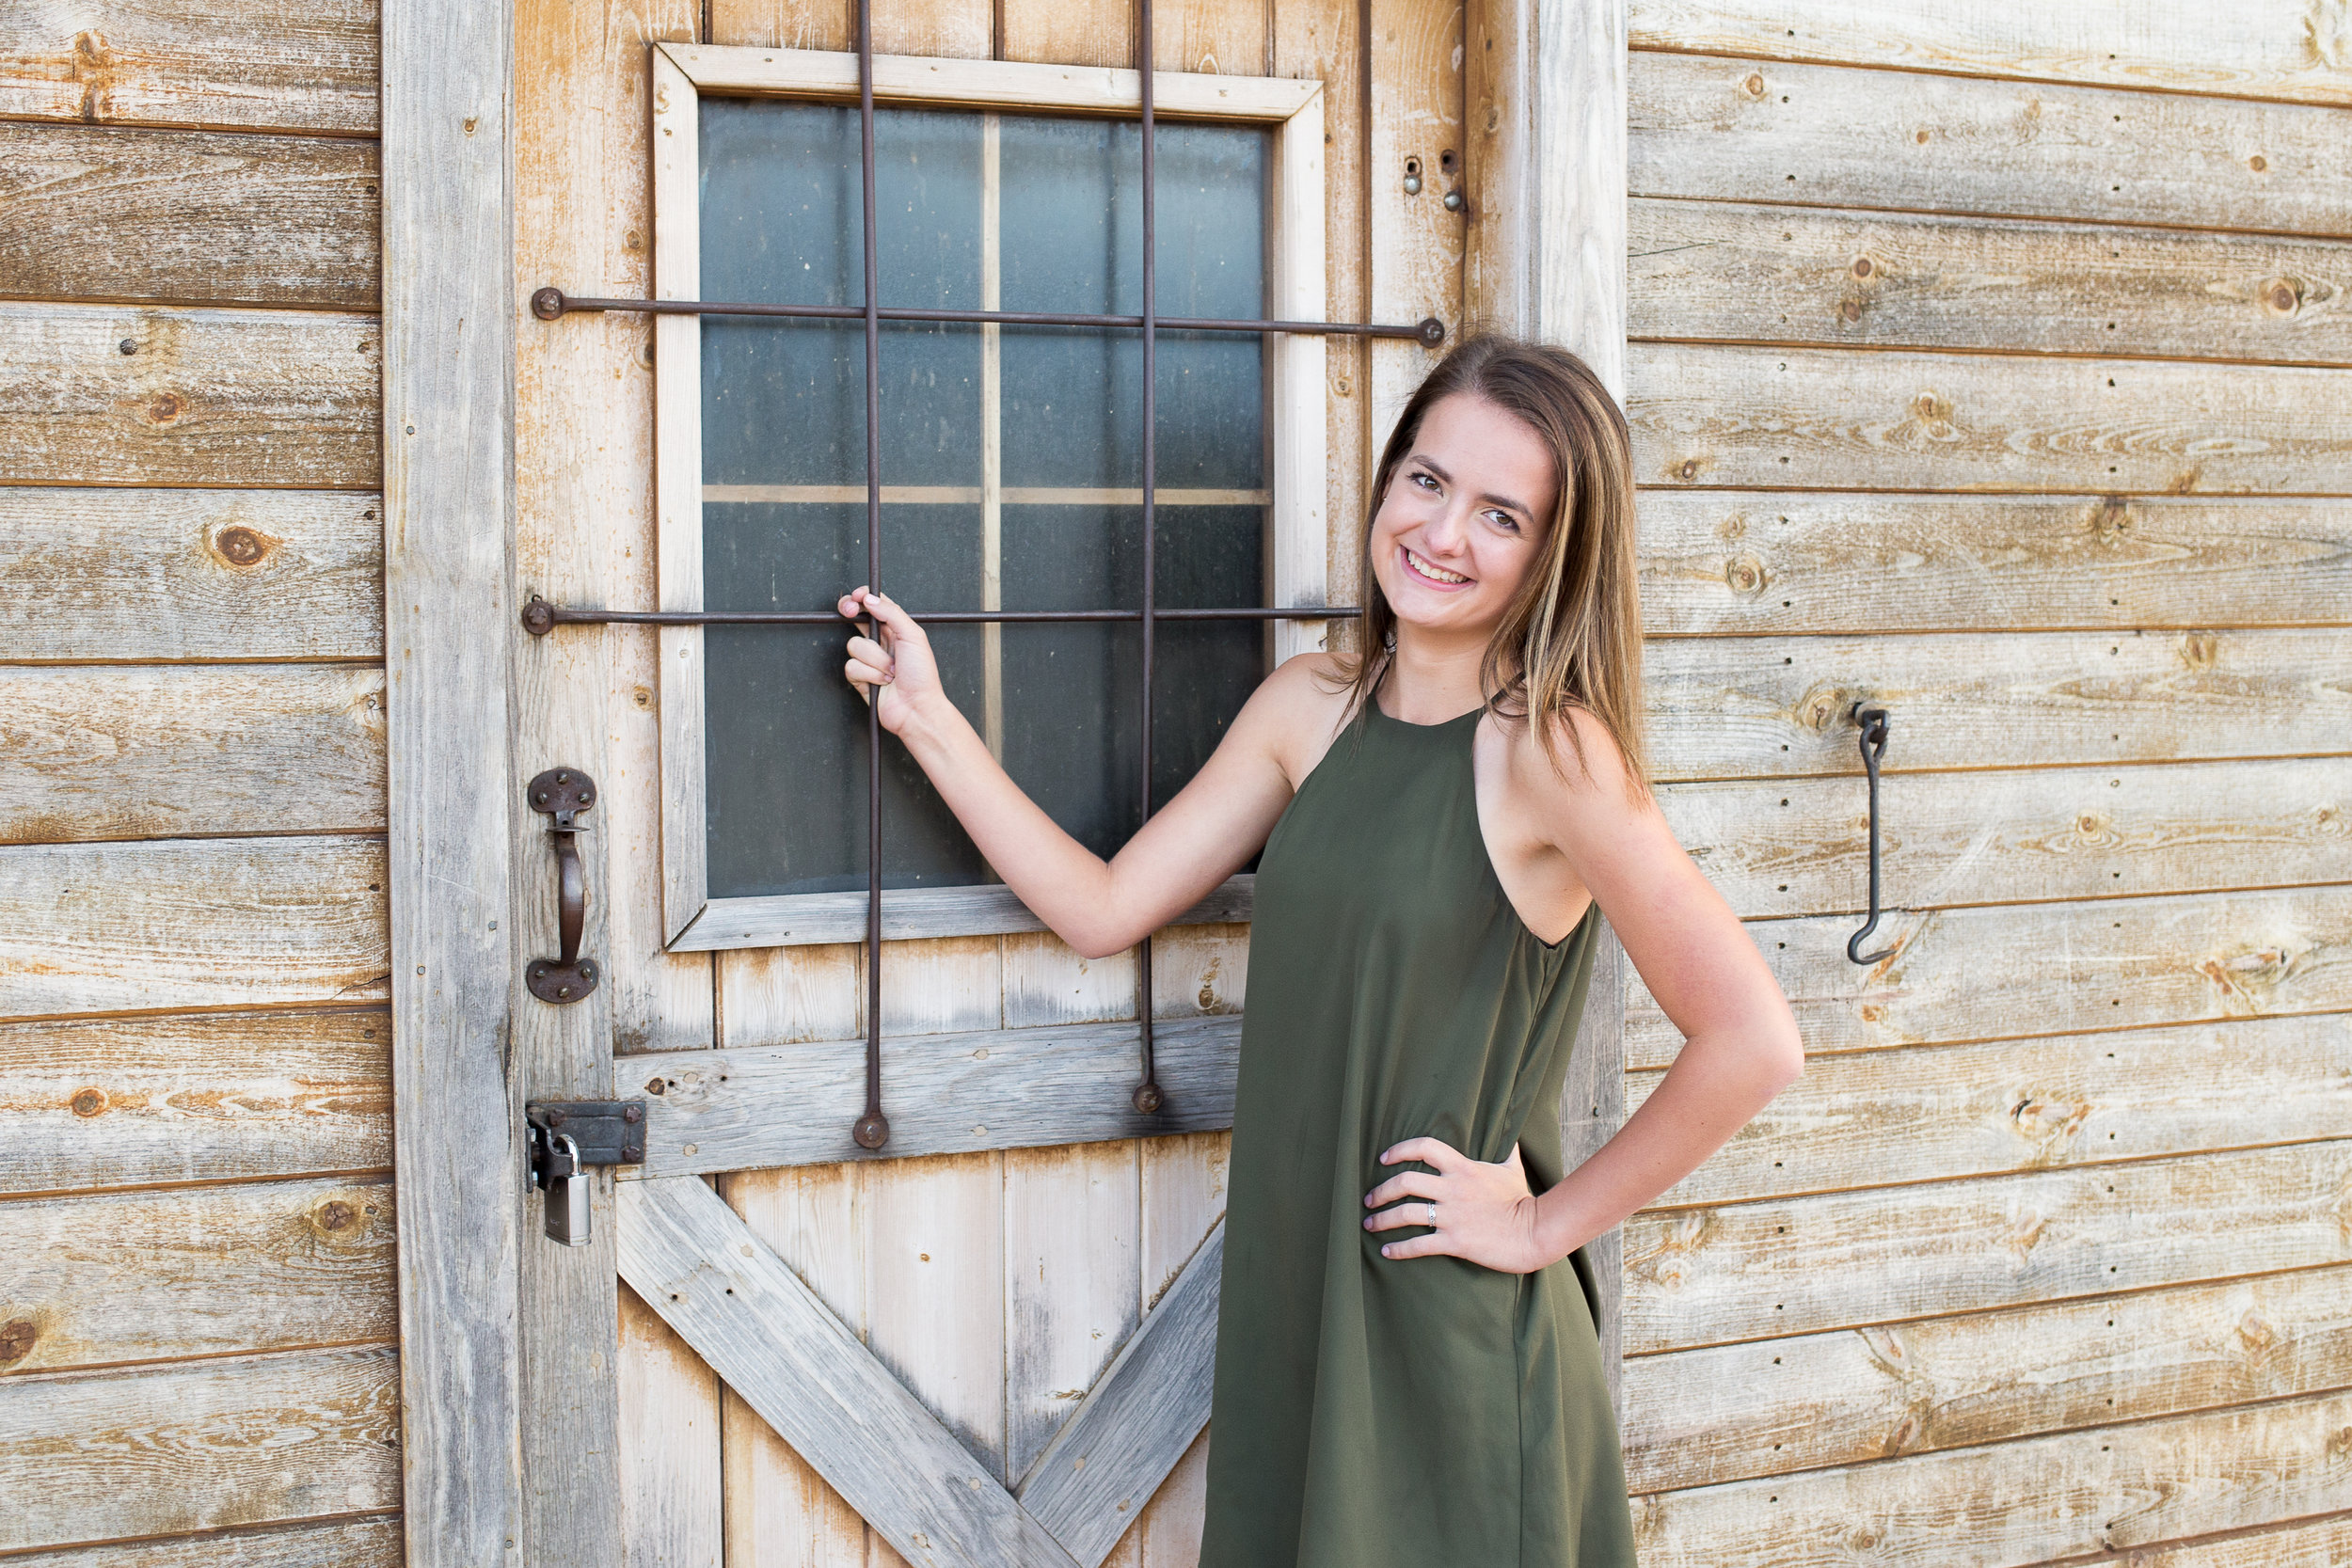 Rock Ledge Ranch Senior Photos girls standing by barn door holding on to the window bars and smiling at camera Stacy Carosa Photography Colorado Springs